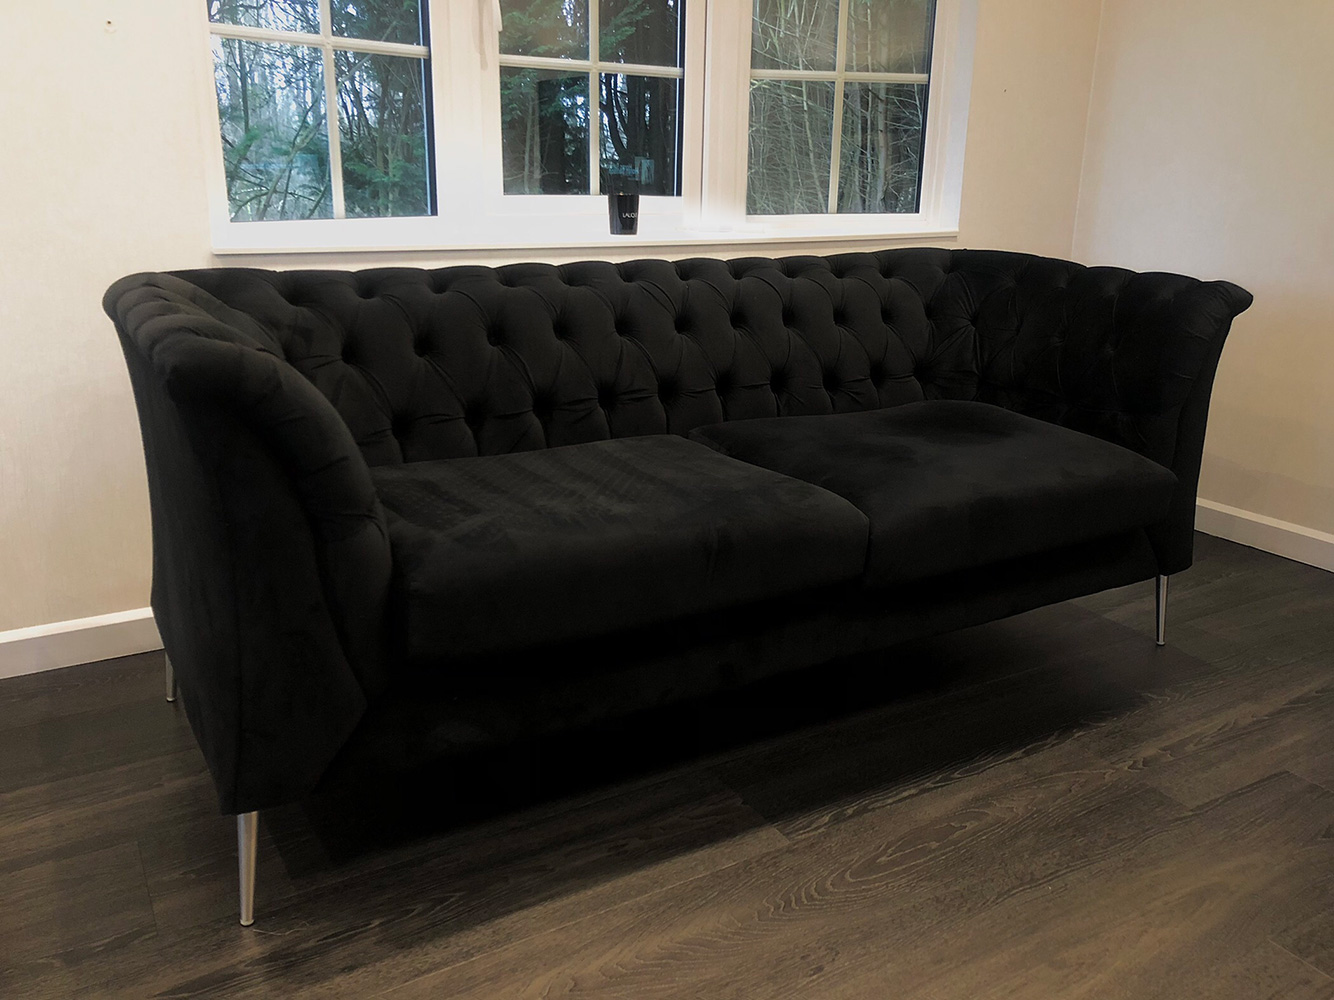 Black Chestefield Modern sofa from Chanel